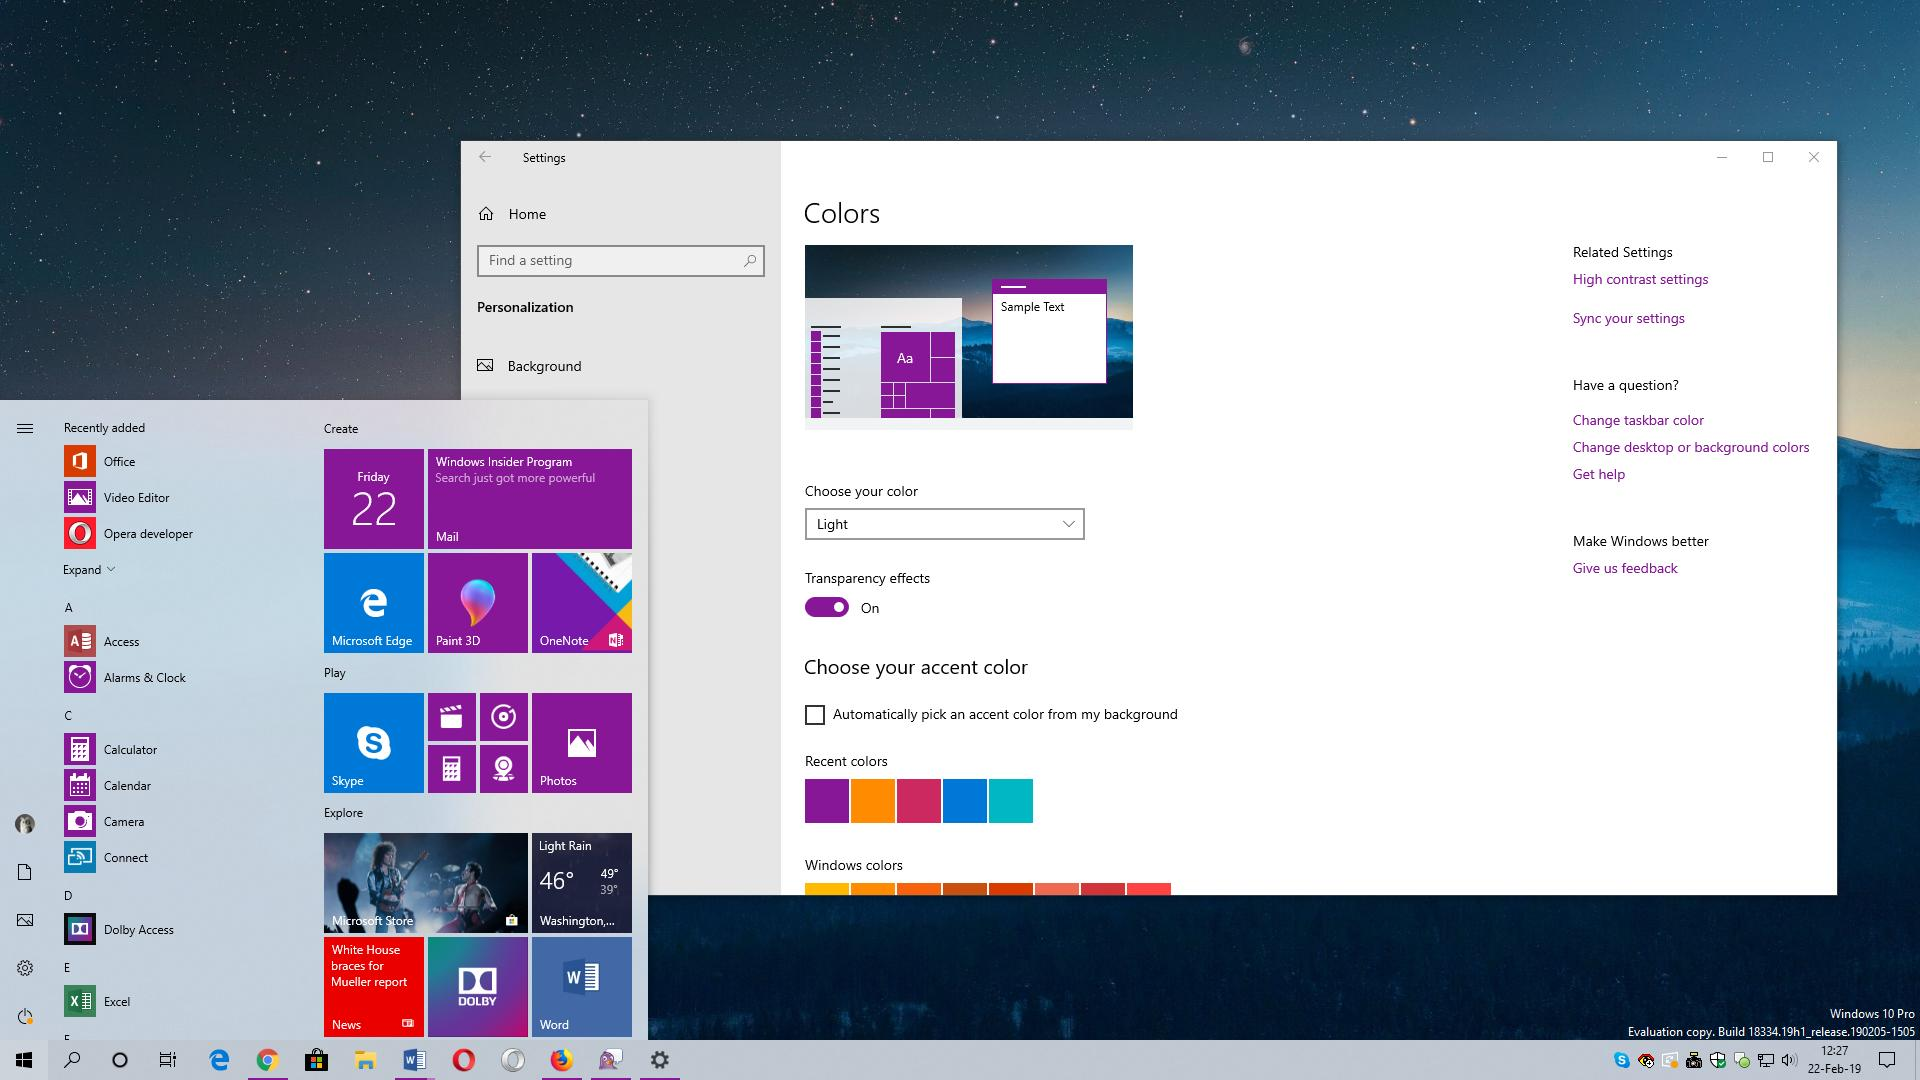 The Only Feature I Want Won't Be Part of Windows 10 Version 1903